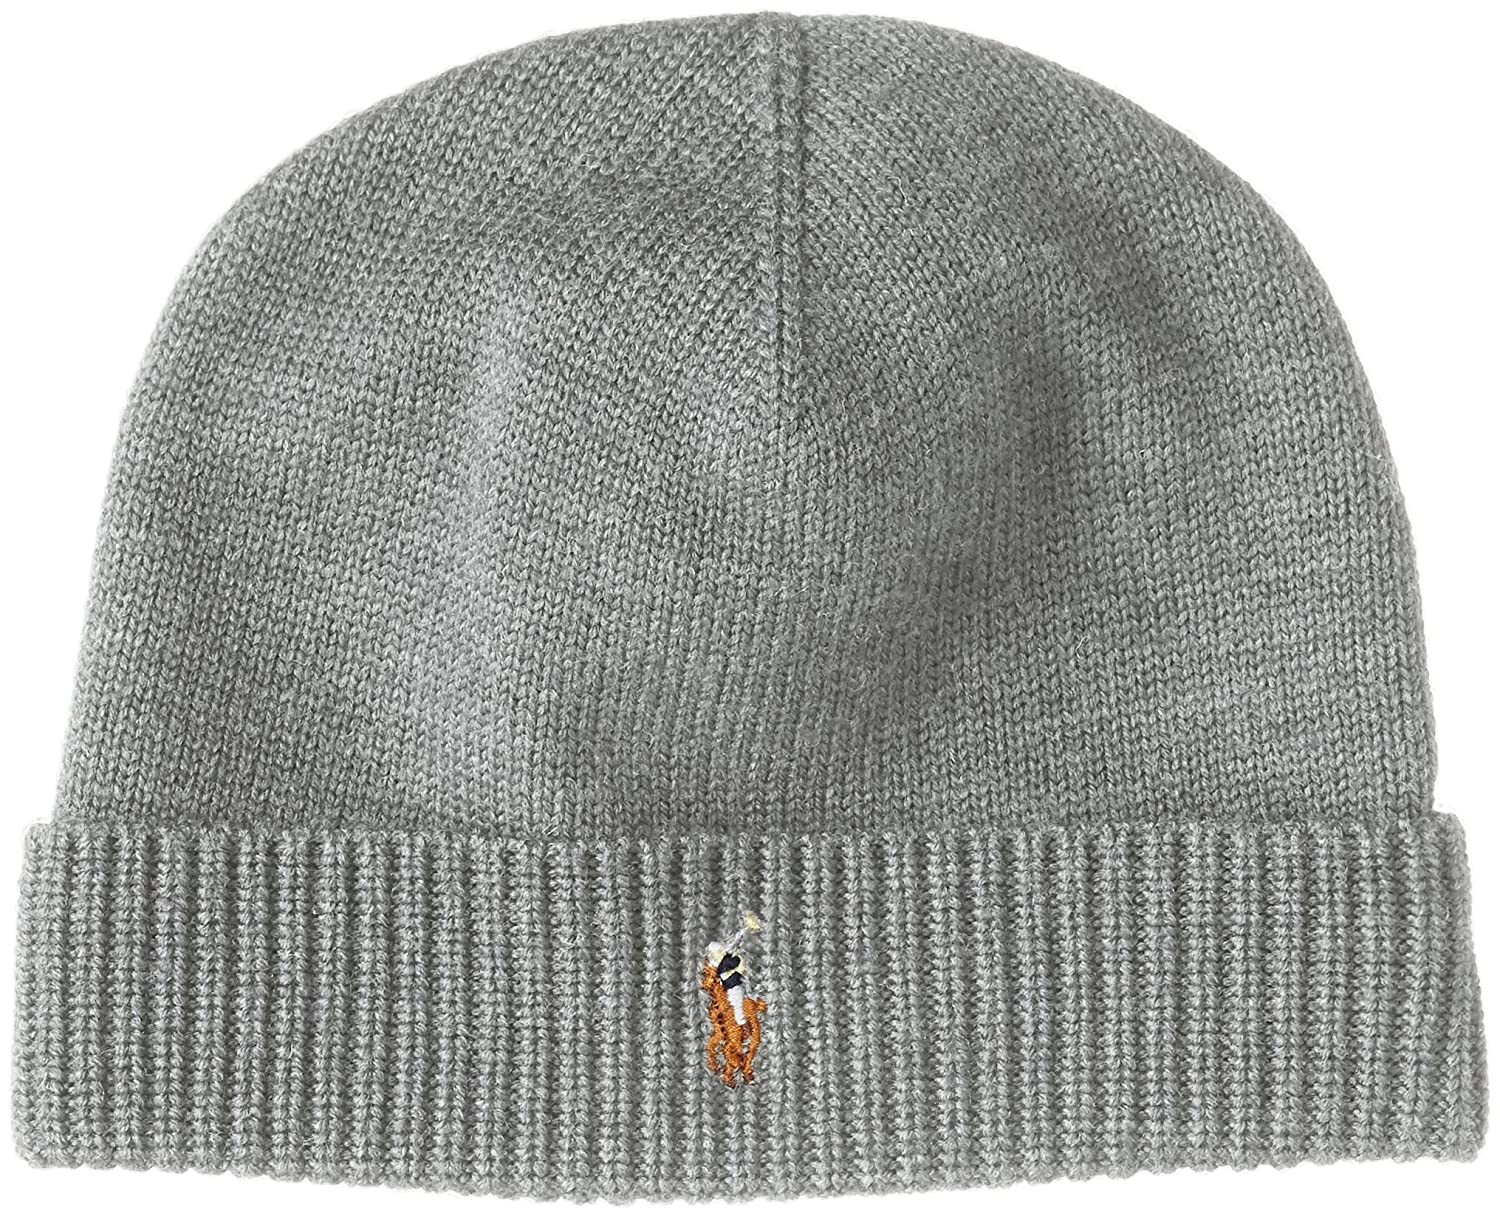 6796c9bdfc4 Polo Ralph Lauren Men s Beanie Watch Cap Merino Wool Grey at Amazon Men s  Clothing store